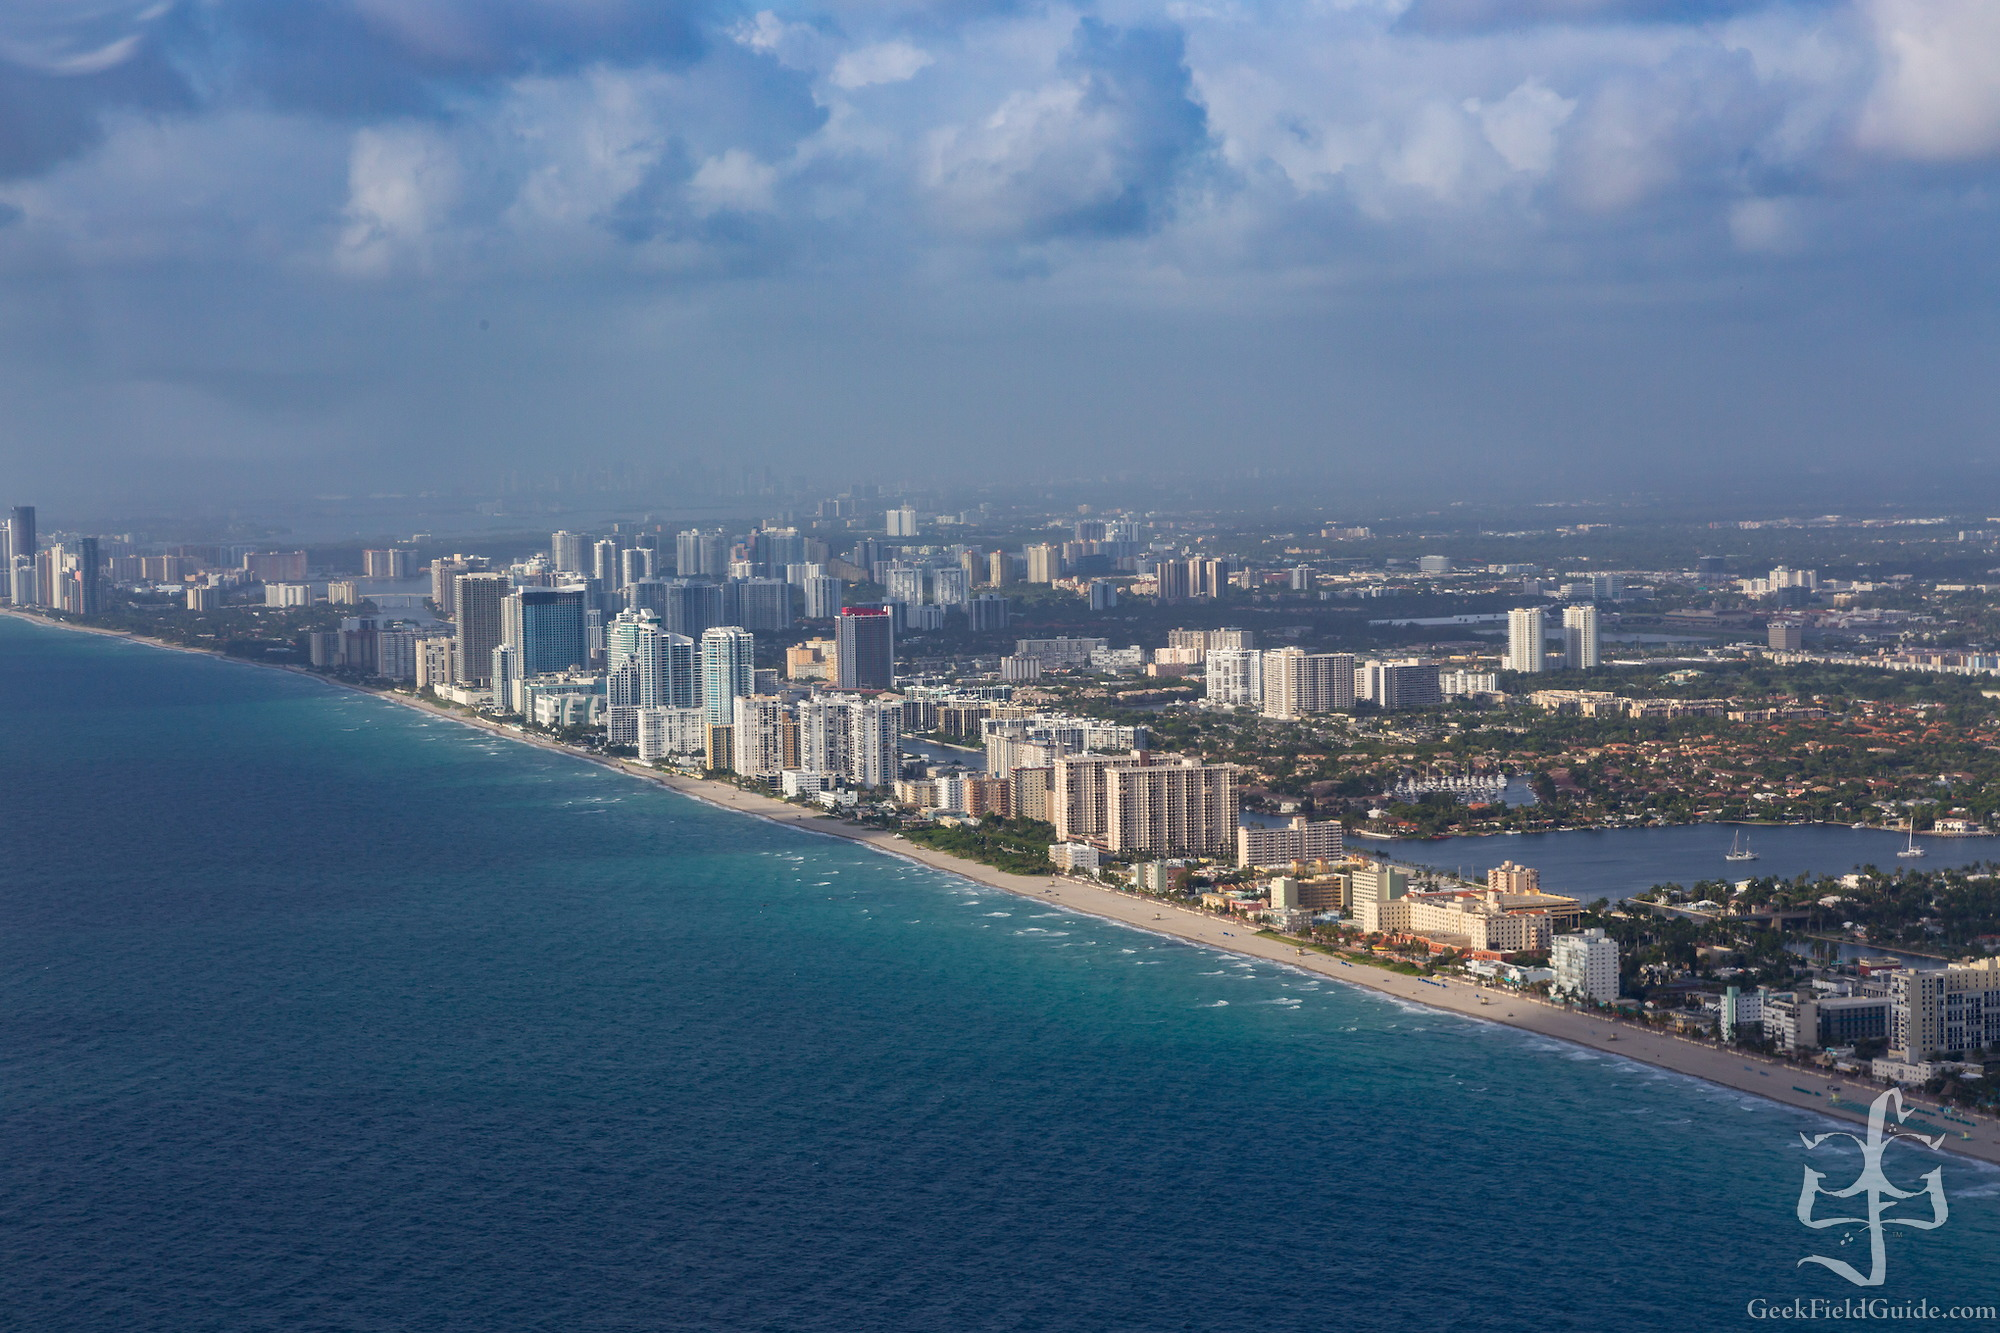 Fort Lauderdale, Florida (Warren Schultz)